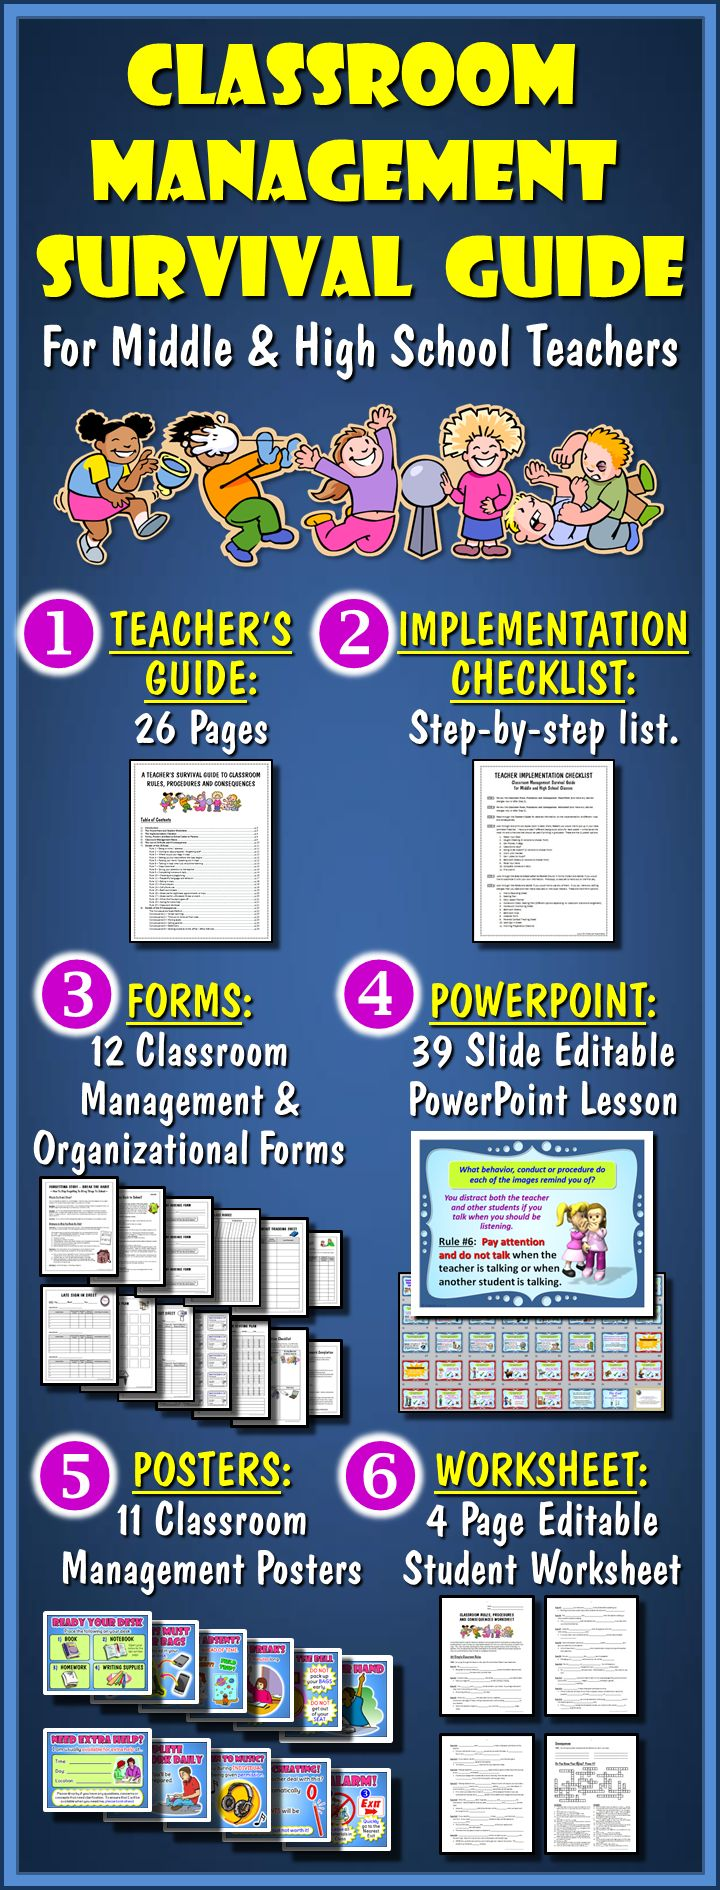 Need a practical solution to your middle school or high school classroom management challenges?  Here it is!